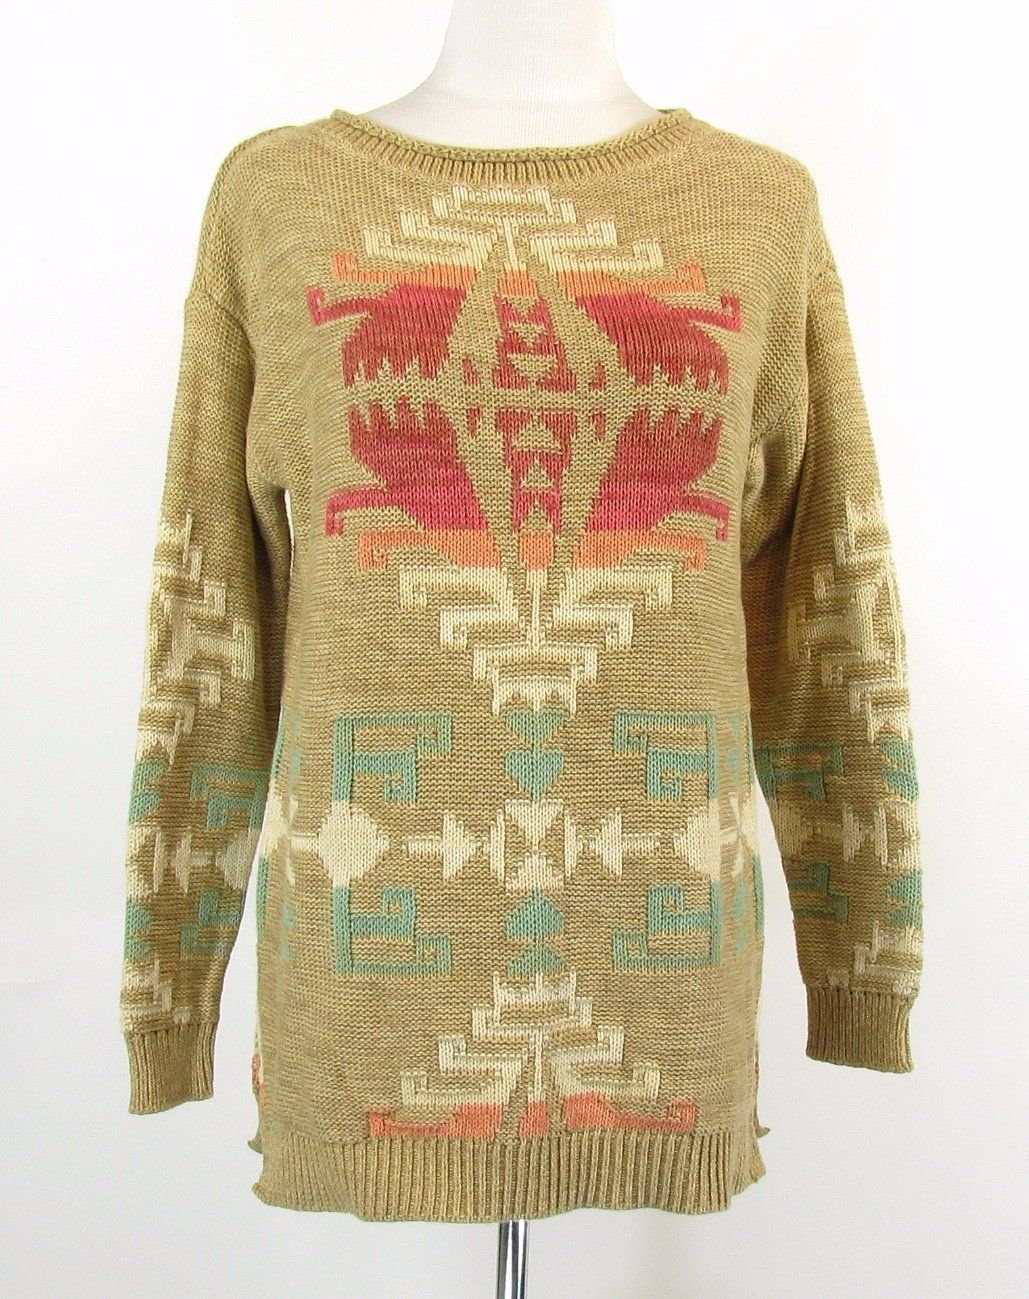 NWT RALPH LAUREN Size M Indian Southwest Cotton Blend Sweater NEW